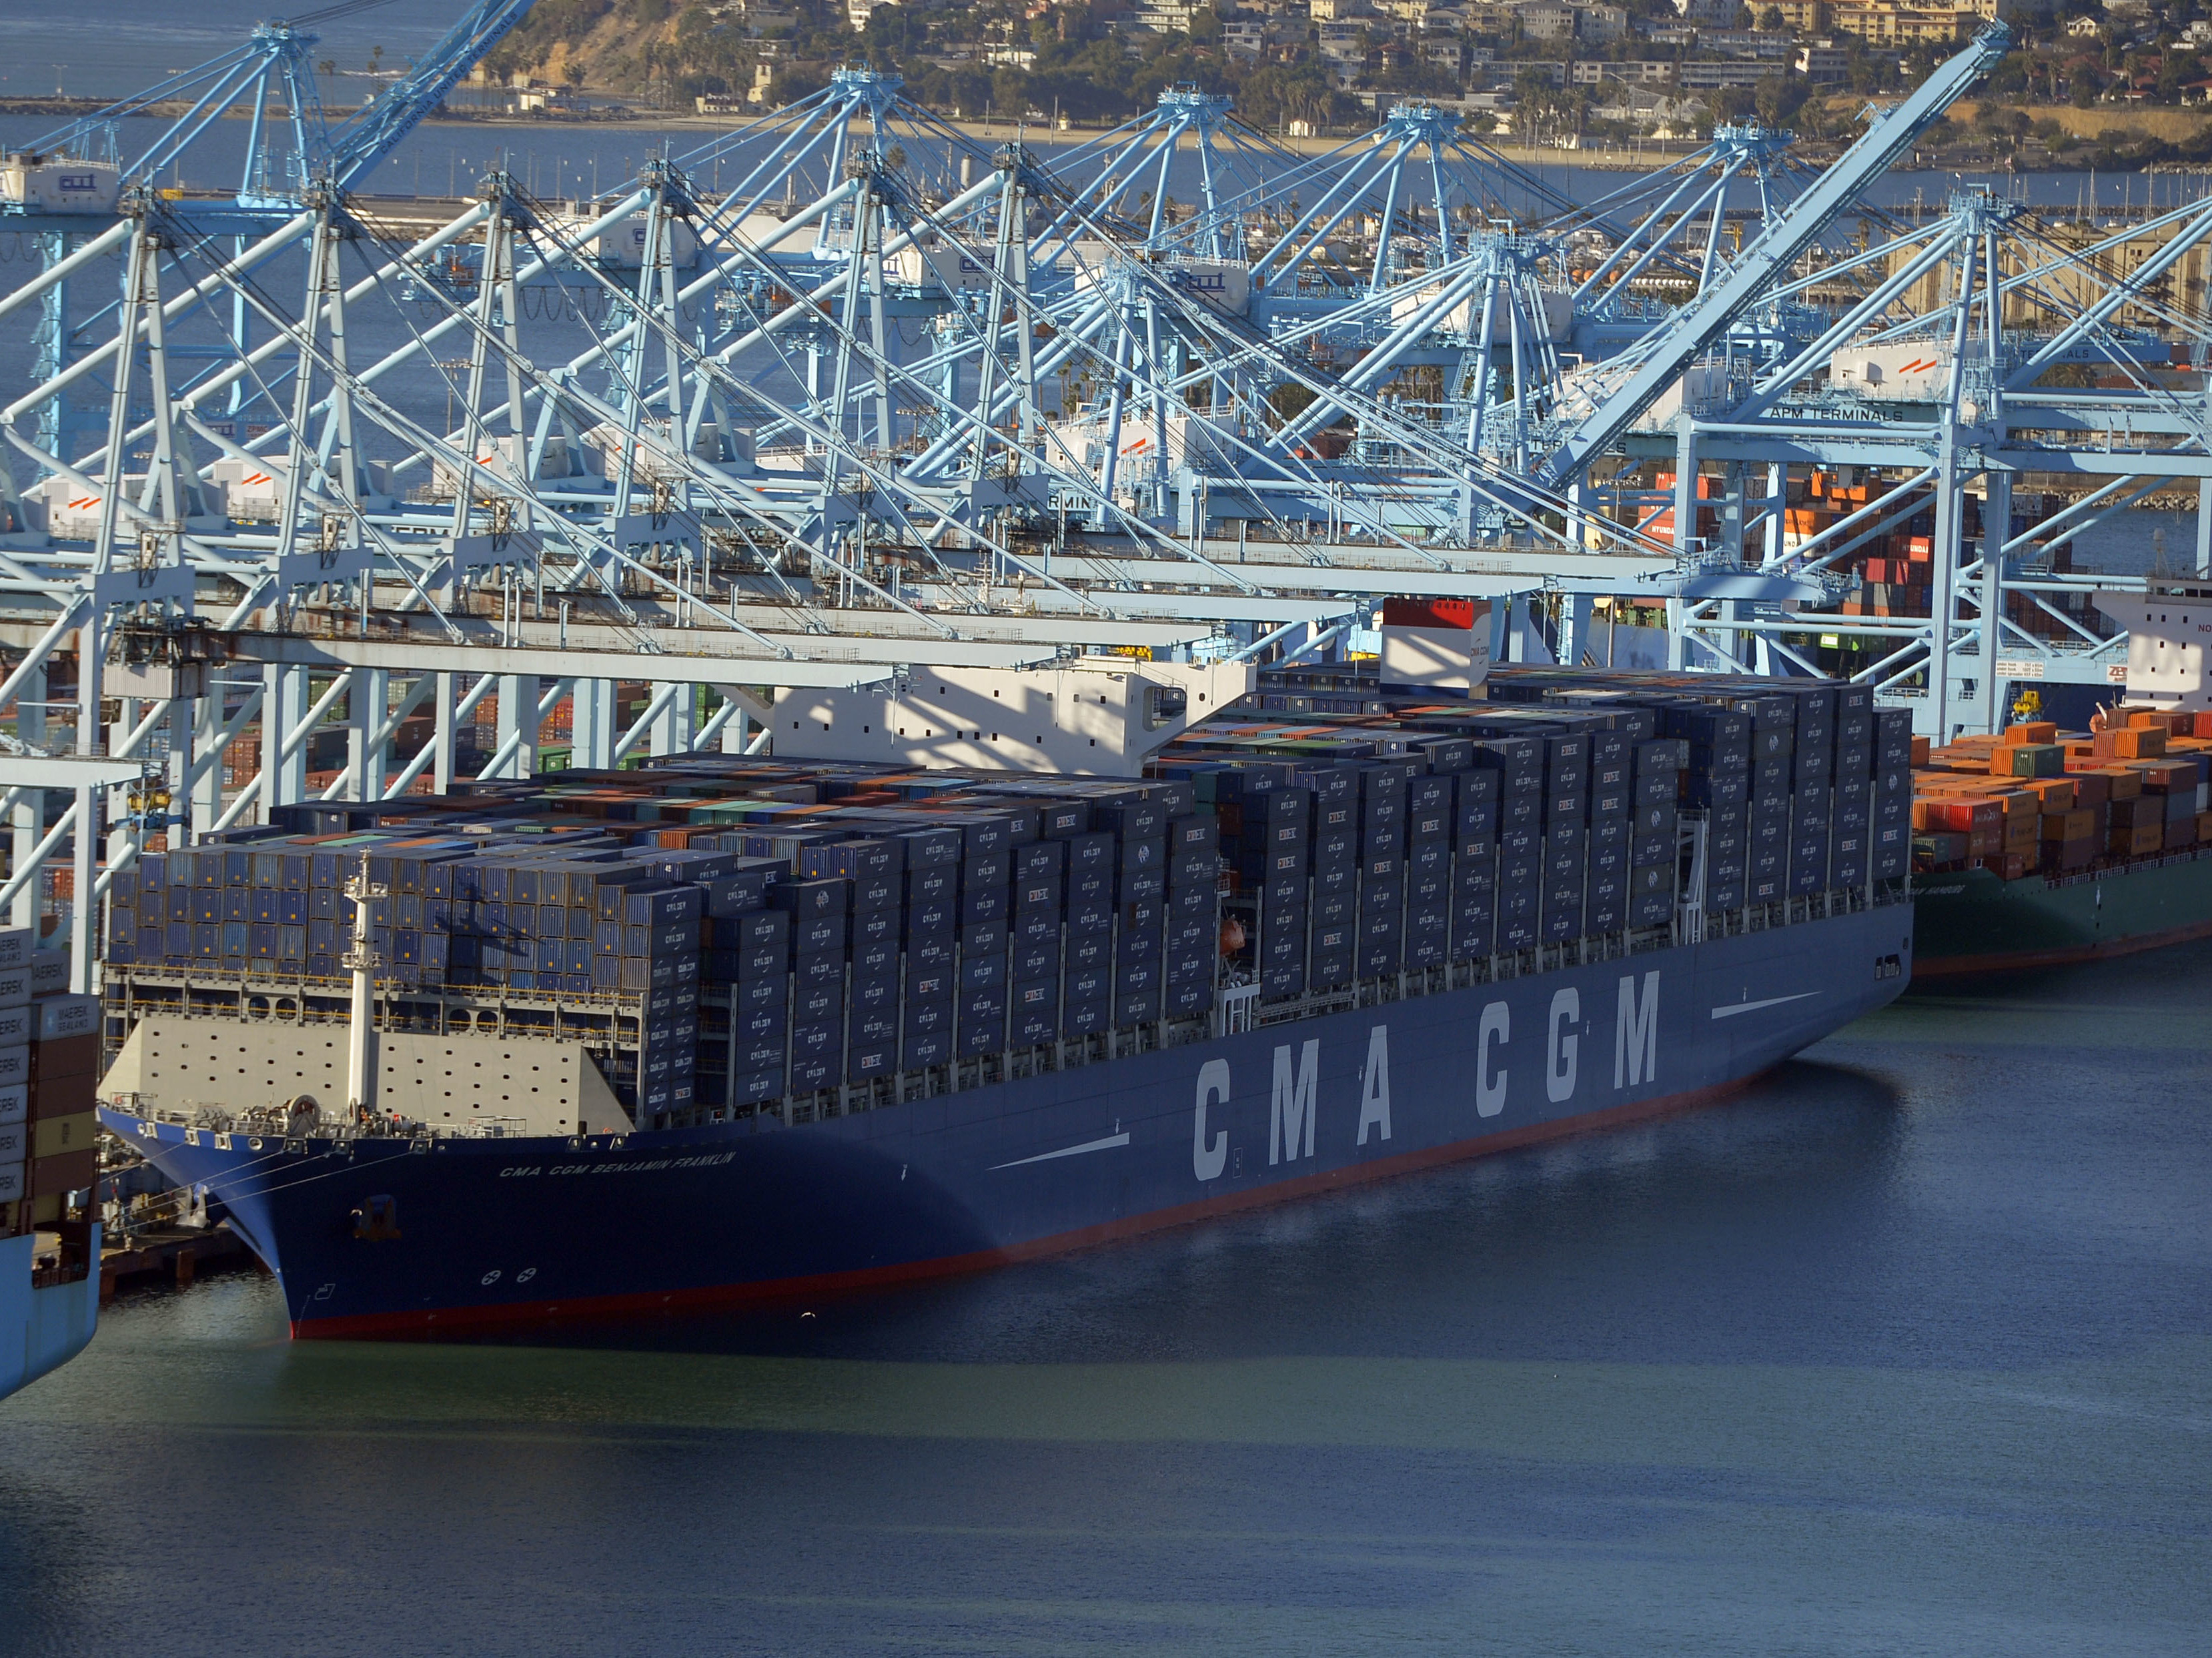 After its maiden voyage from China, the largest container ship to ever make port in North America, unloads its cargo in the Port of Los Angeles on Dec. 26, 2015. The major shipping companies in Europe and Asia began ordering the state-of-the-art, supersized ships back in 2011, when times were better. Scott Varley/AP